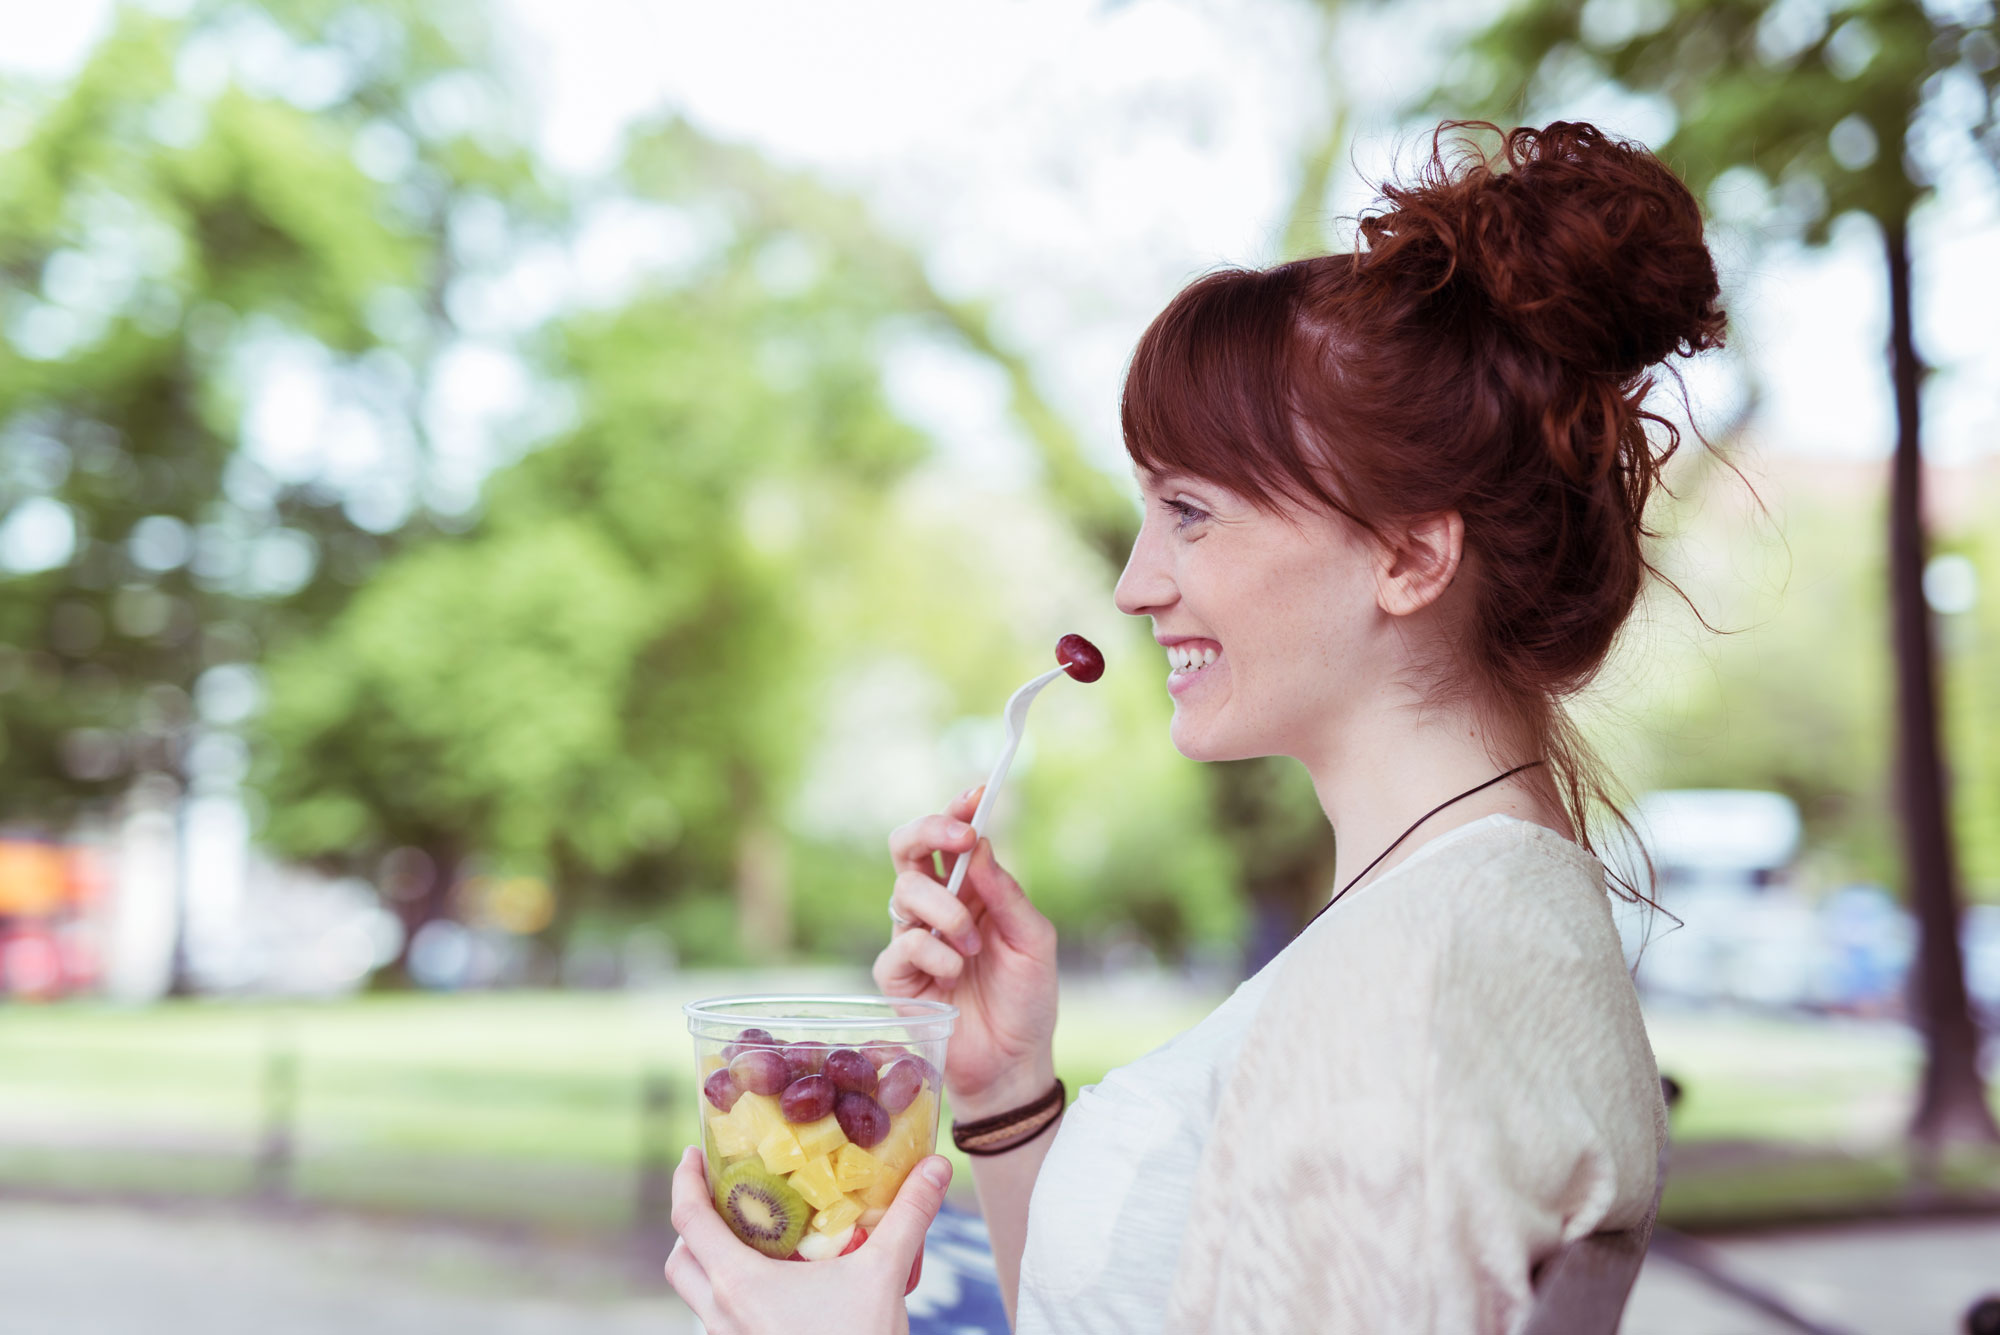 A happy woman enjoying a cup of fruit in park background